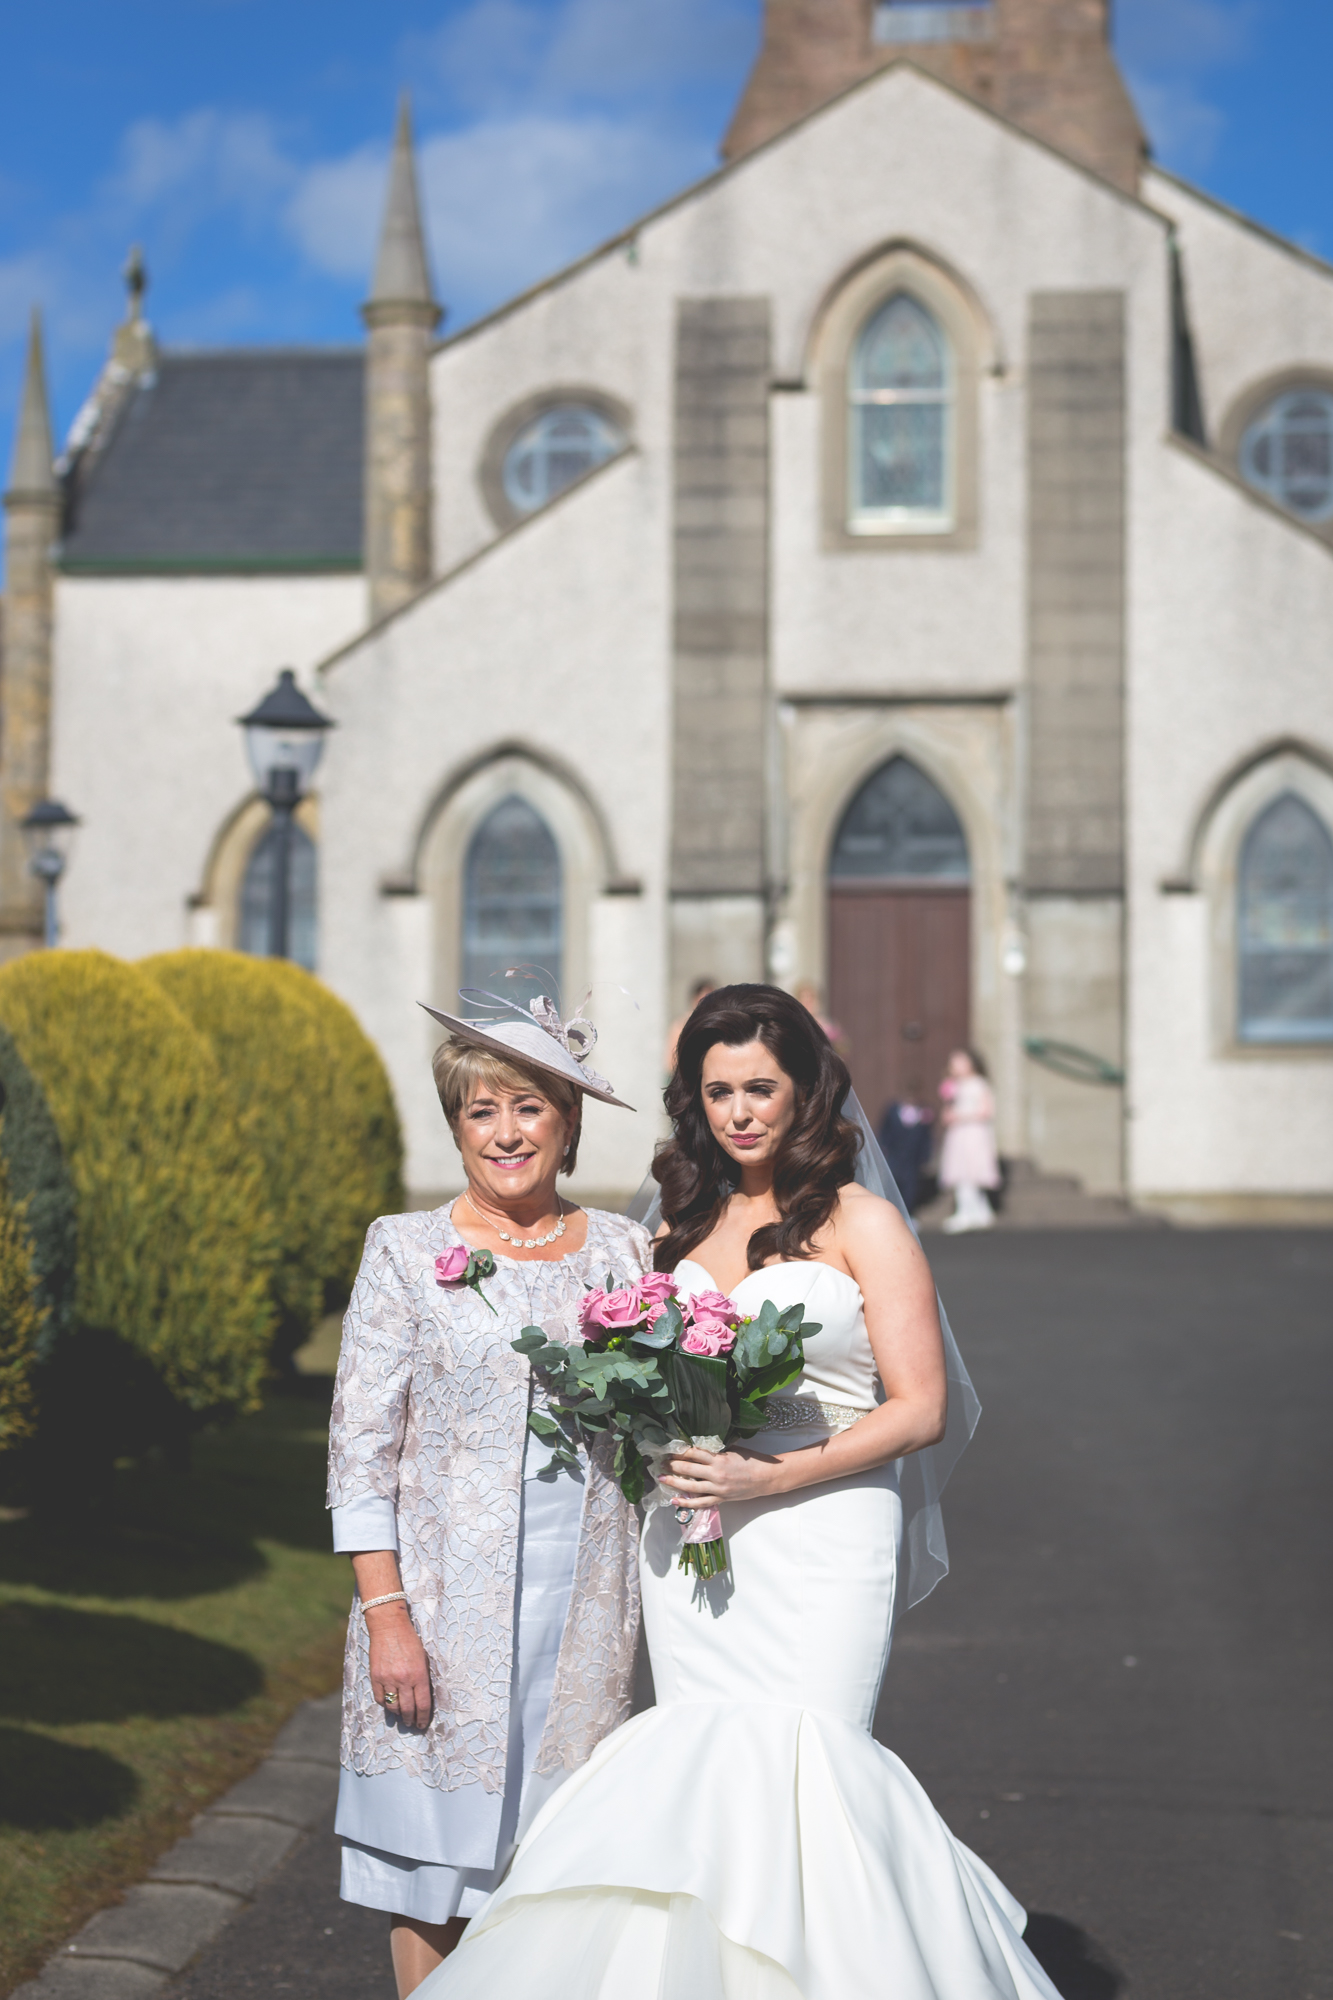 Francis&Oonagh-Ceremony-31.jpg